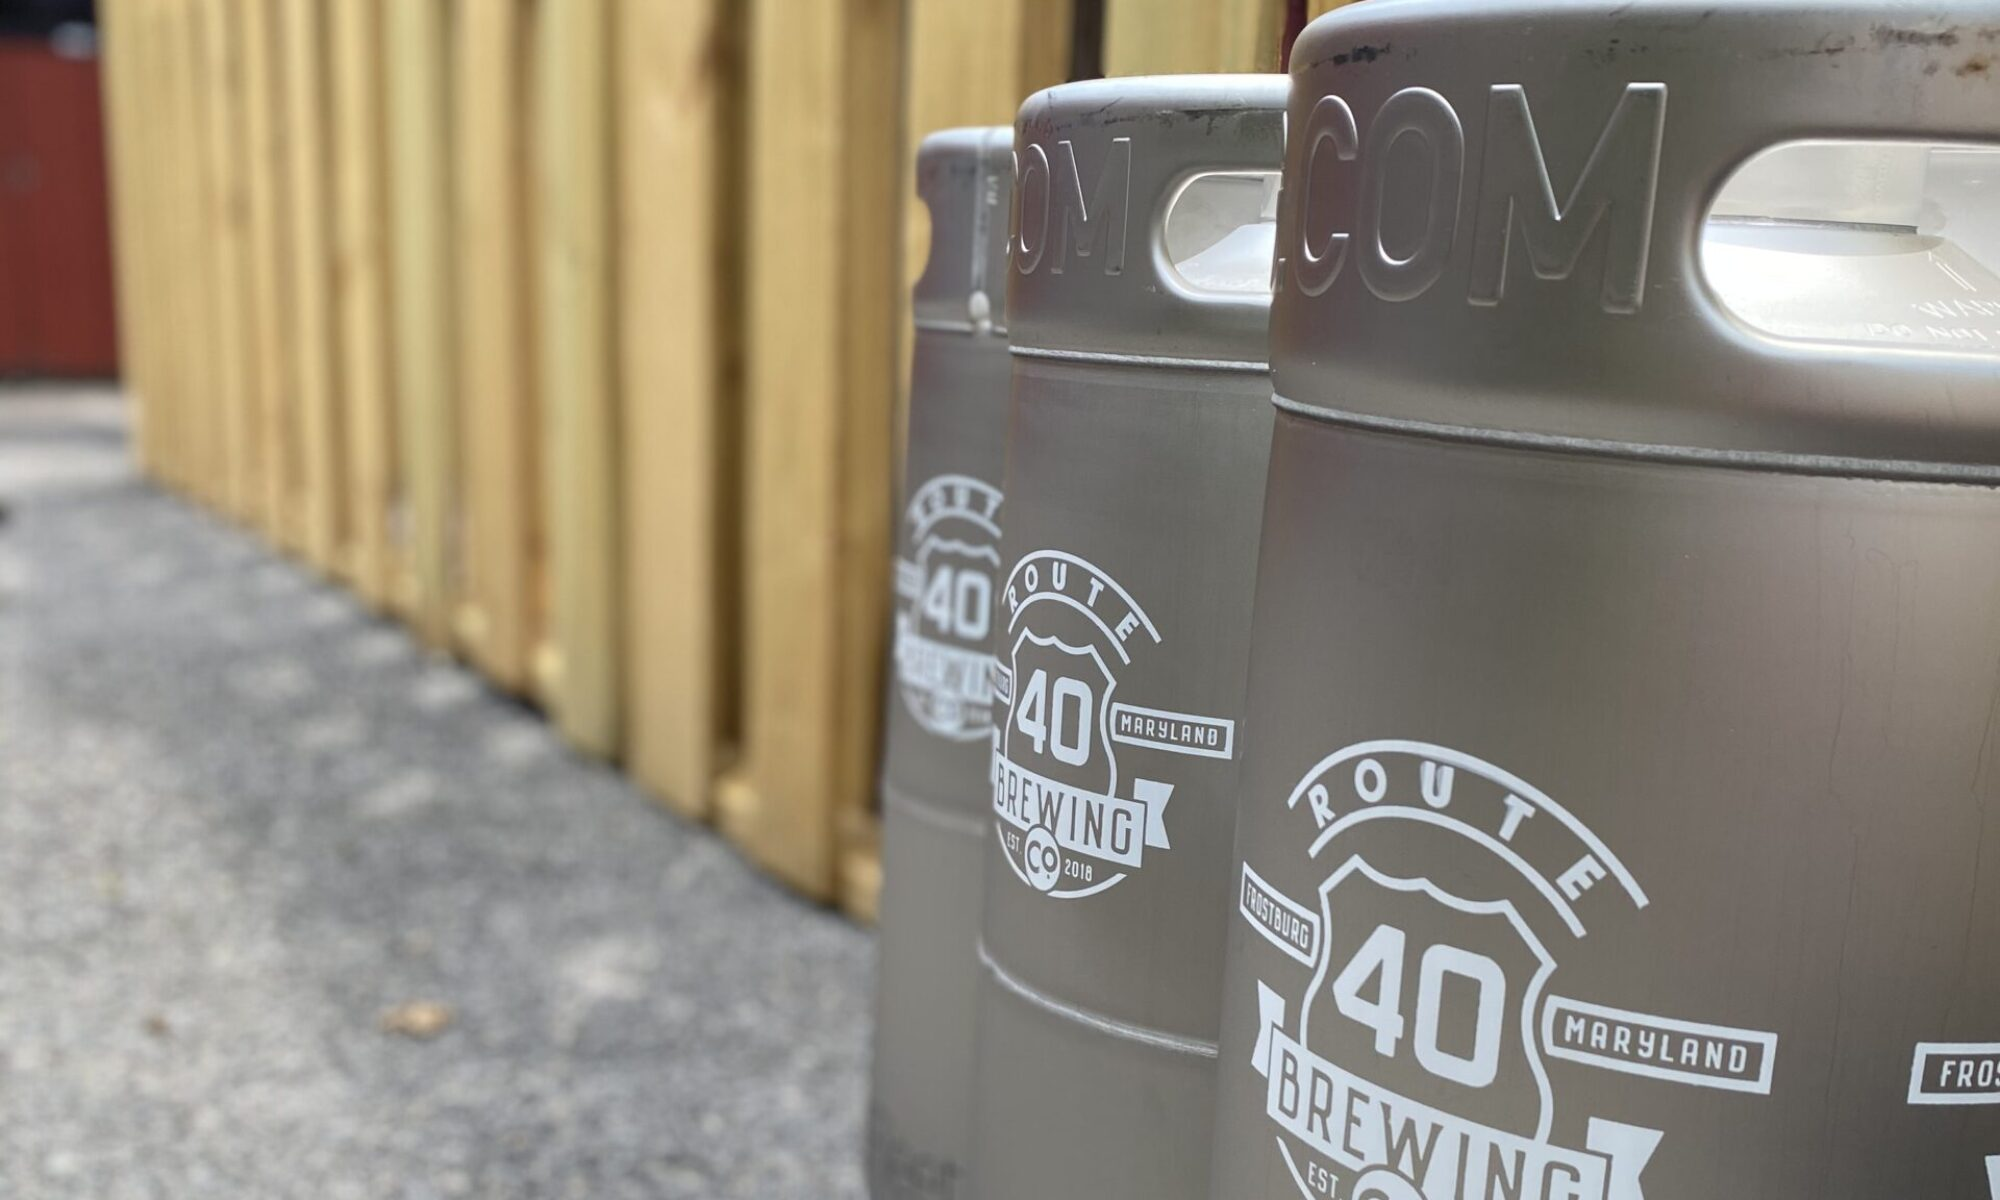 Route 40 Brewing & Distilling Company